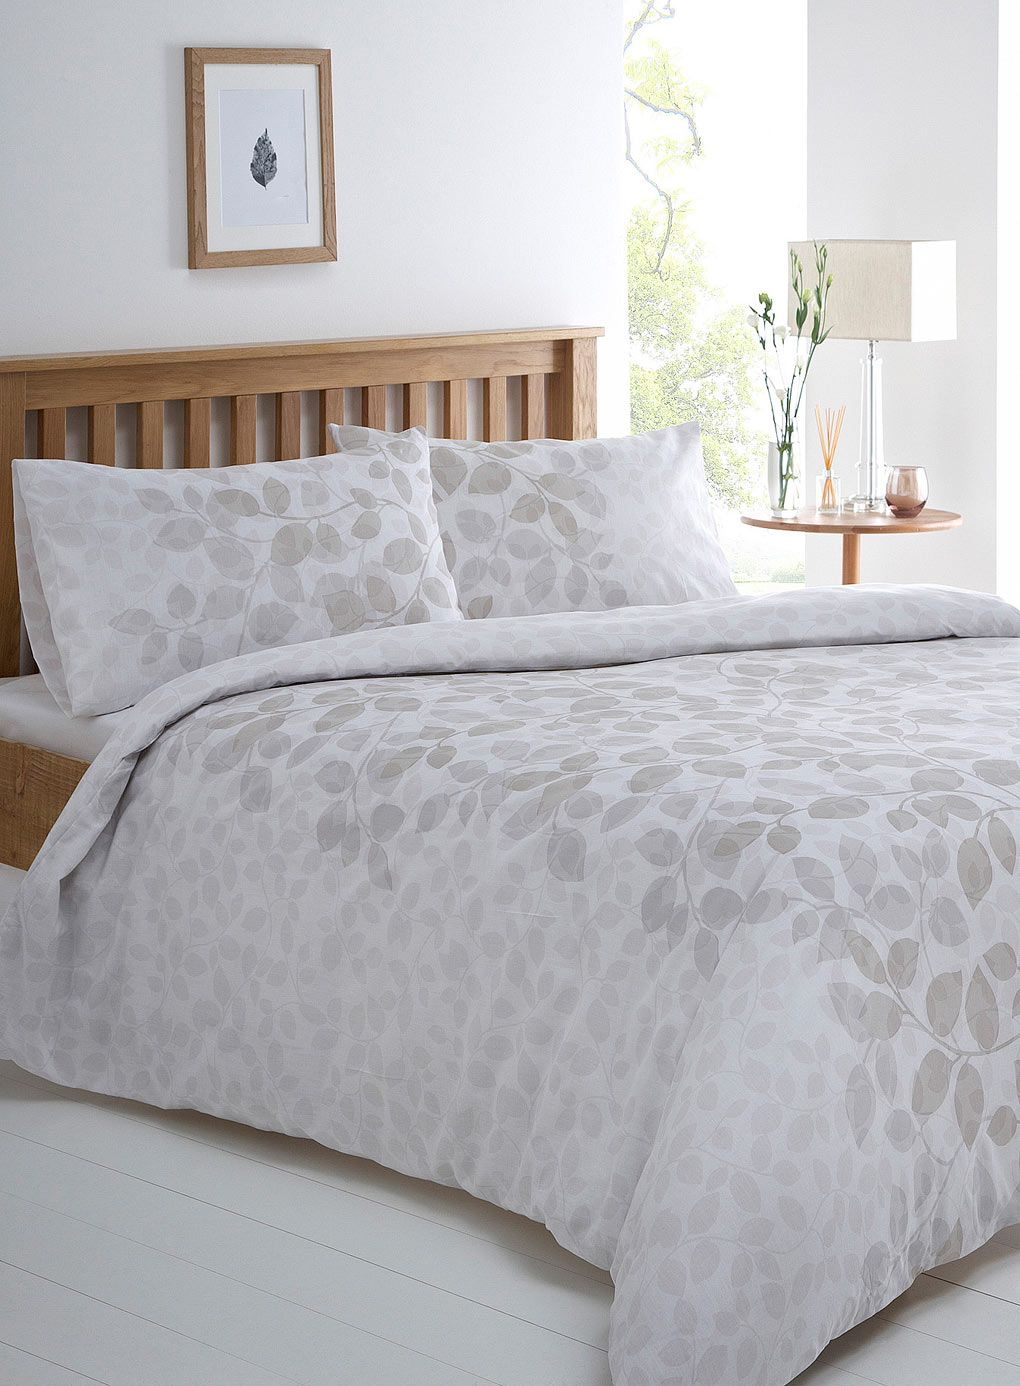 grey botannical leaf printed bedding set  bhs  winter feminine  - grey botannical leaf printed bedding set  bhs